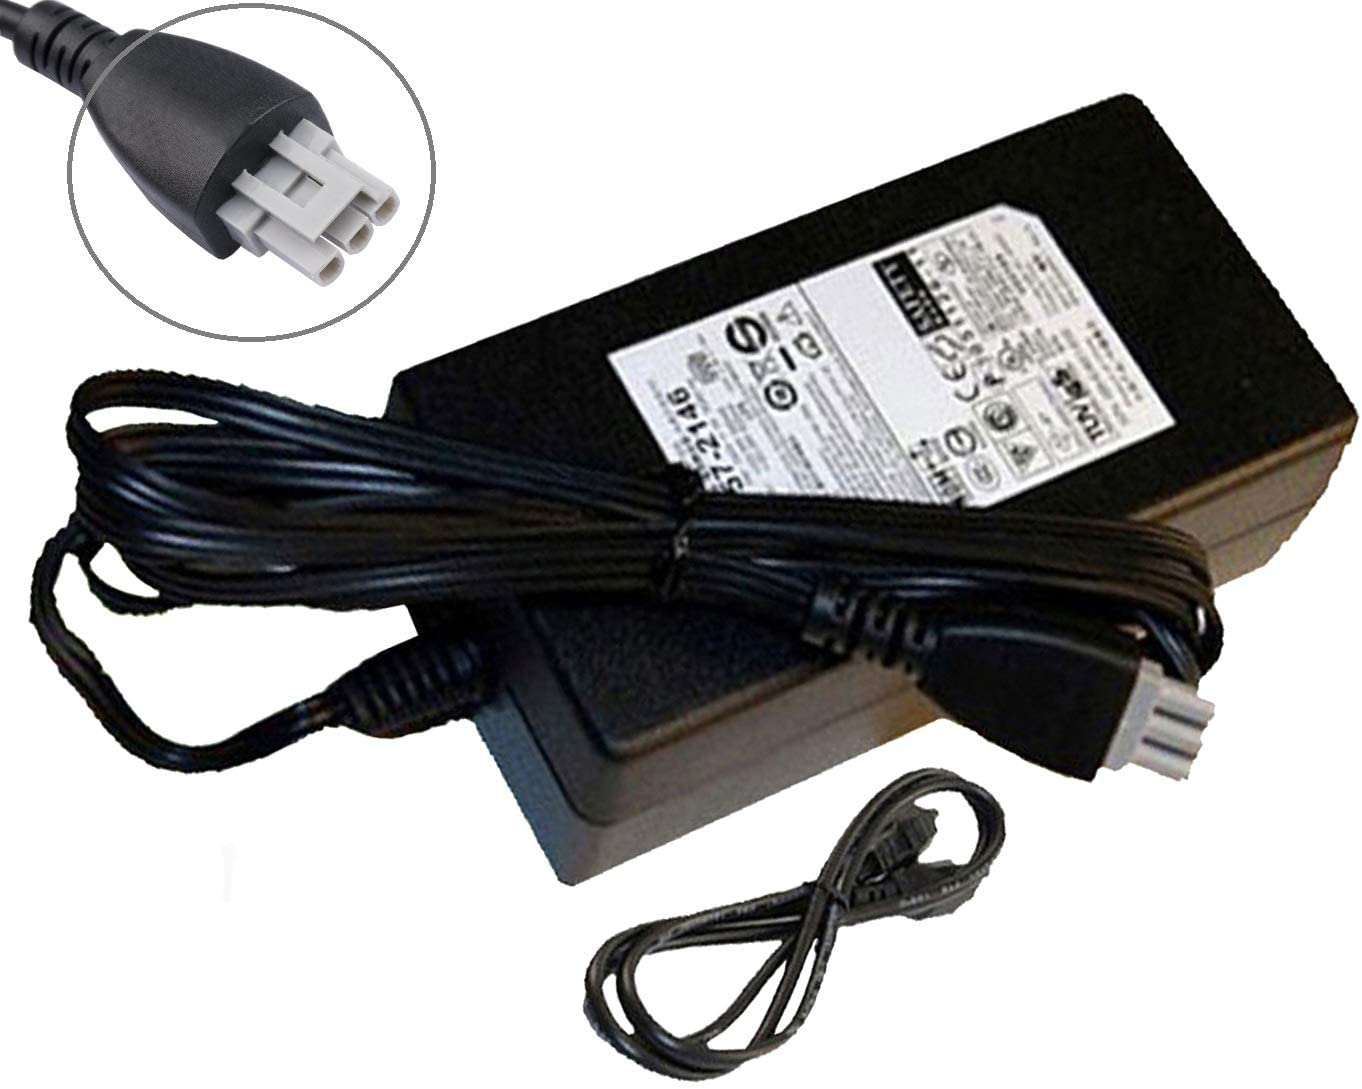 UpBright +32V +16V AC Adapter Replacement for HP 0957-2231 0950-4401 0957-2084 Photosmart C3140 C3150 C3180 C3183 C4180 C4280 C5240 C5275 C5550 C5580 C5570 PSC 2510xi 1610 1510s 1315xi OfficeJet 6310v